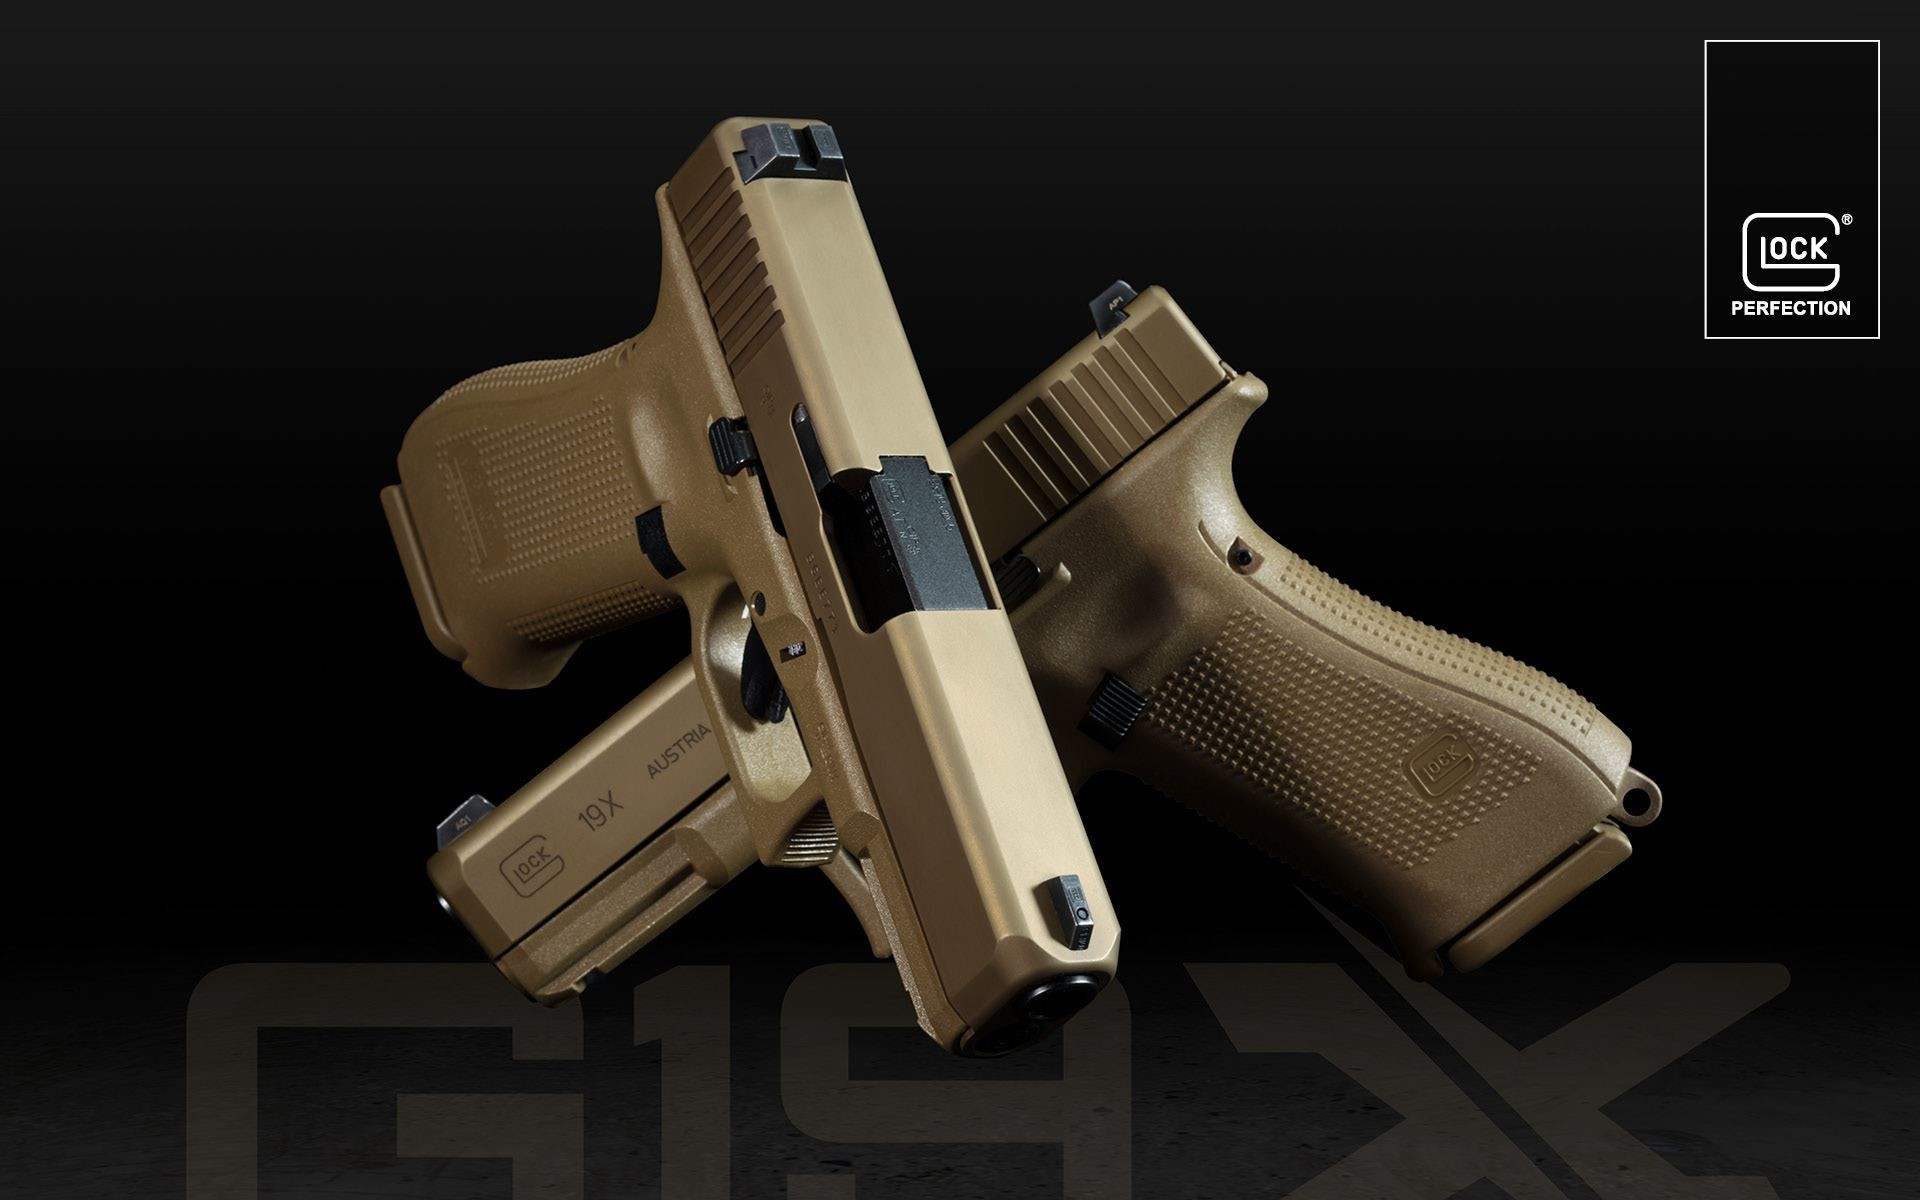 Res: 1920x1200, 1920 x 1200. Start download. GLOCK Gen5 Wallpaper Preview